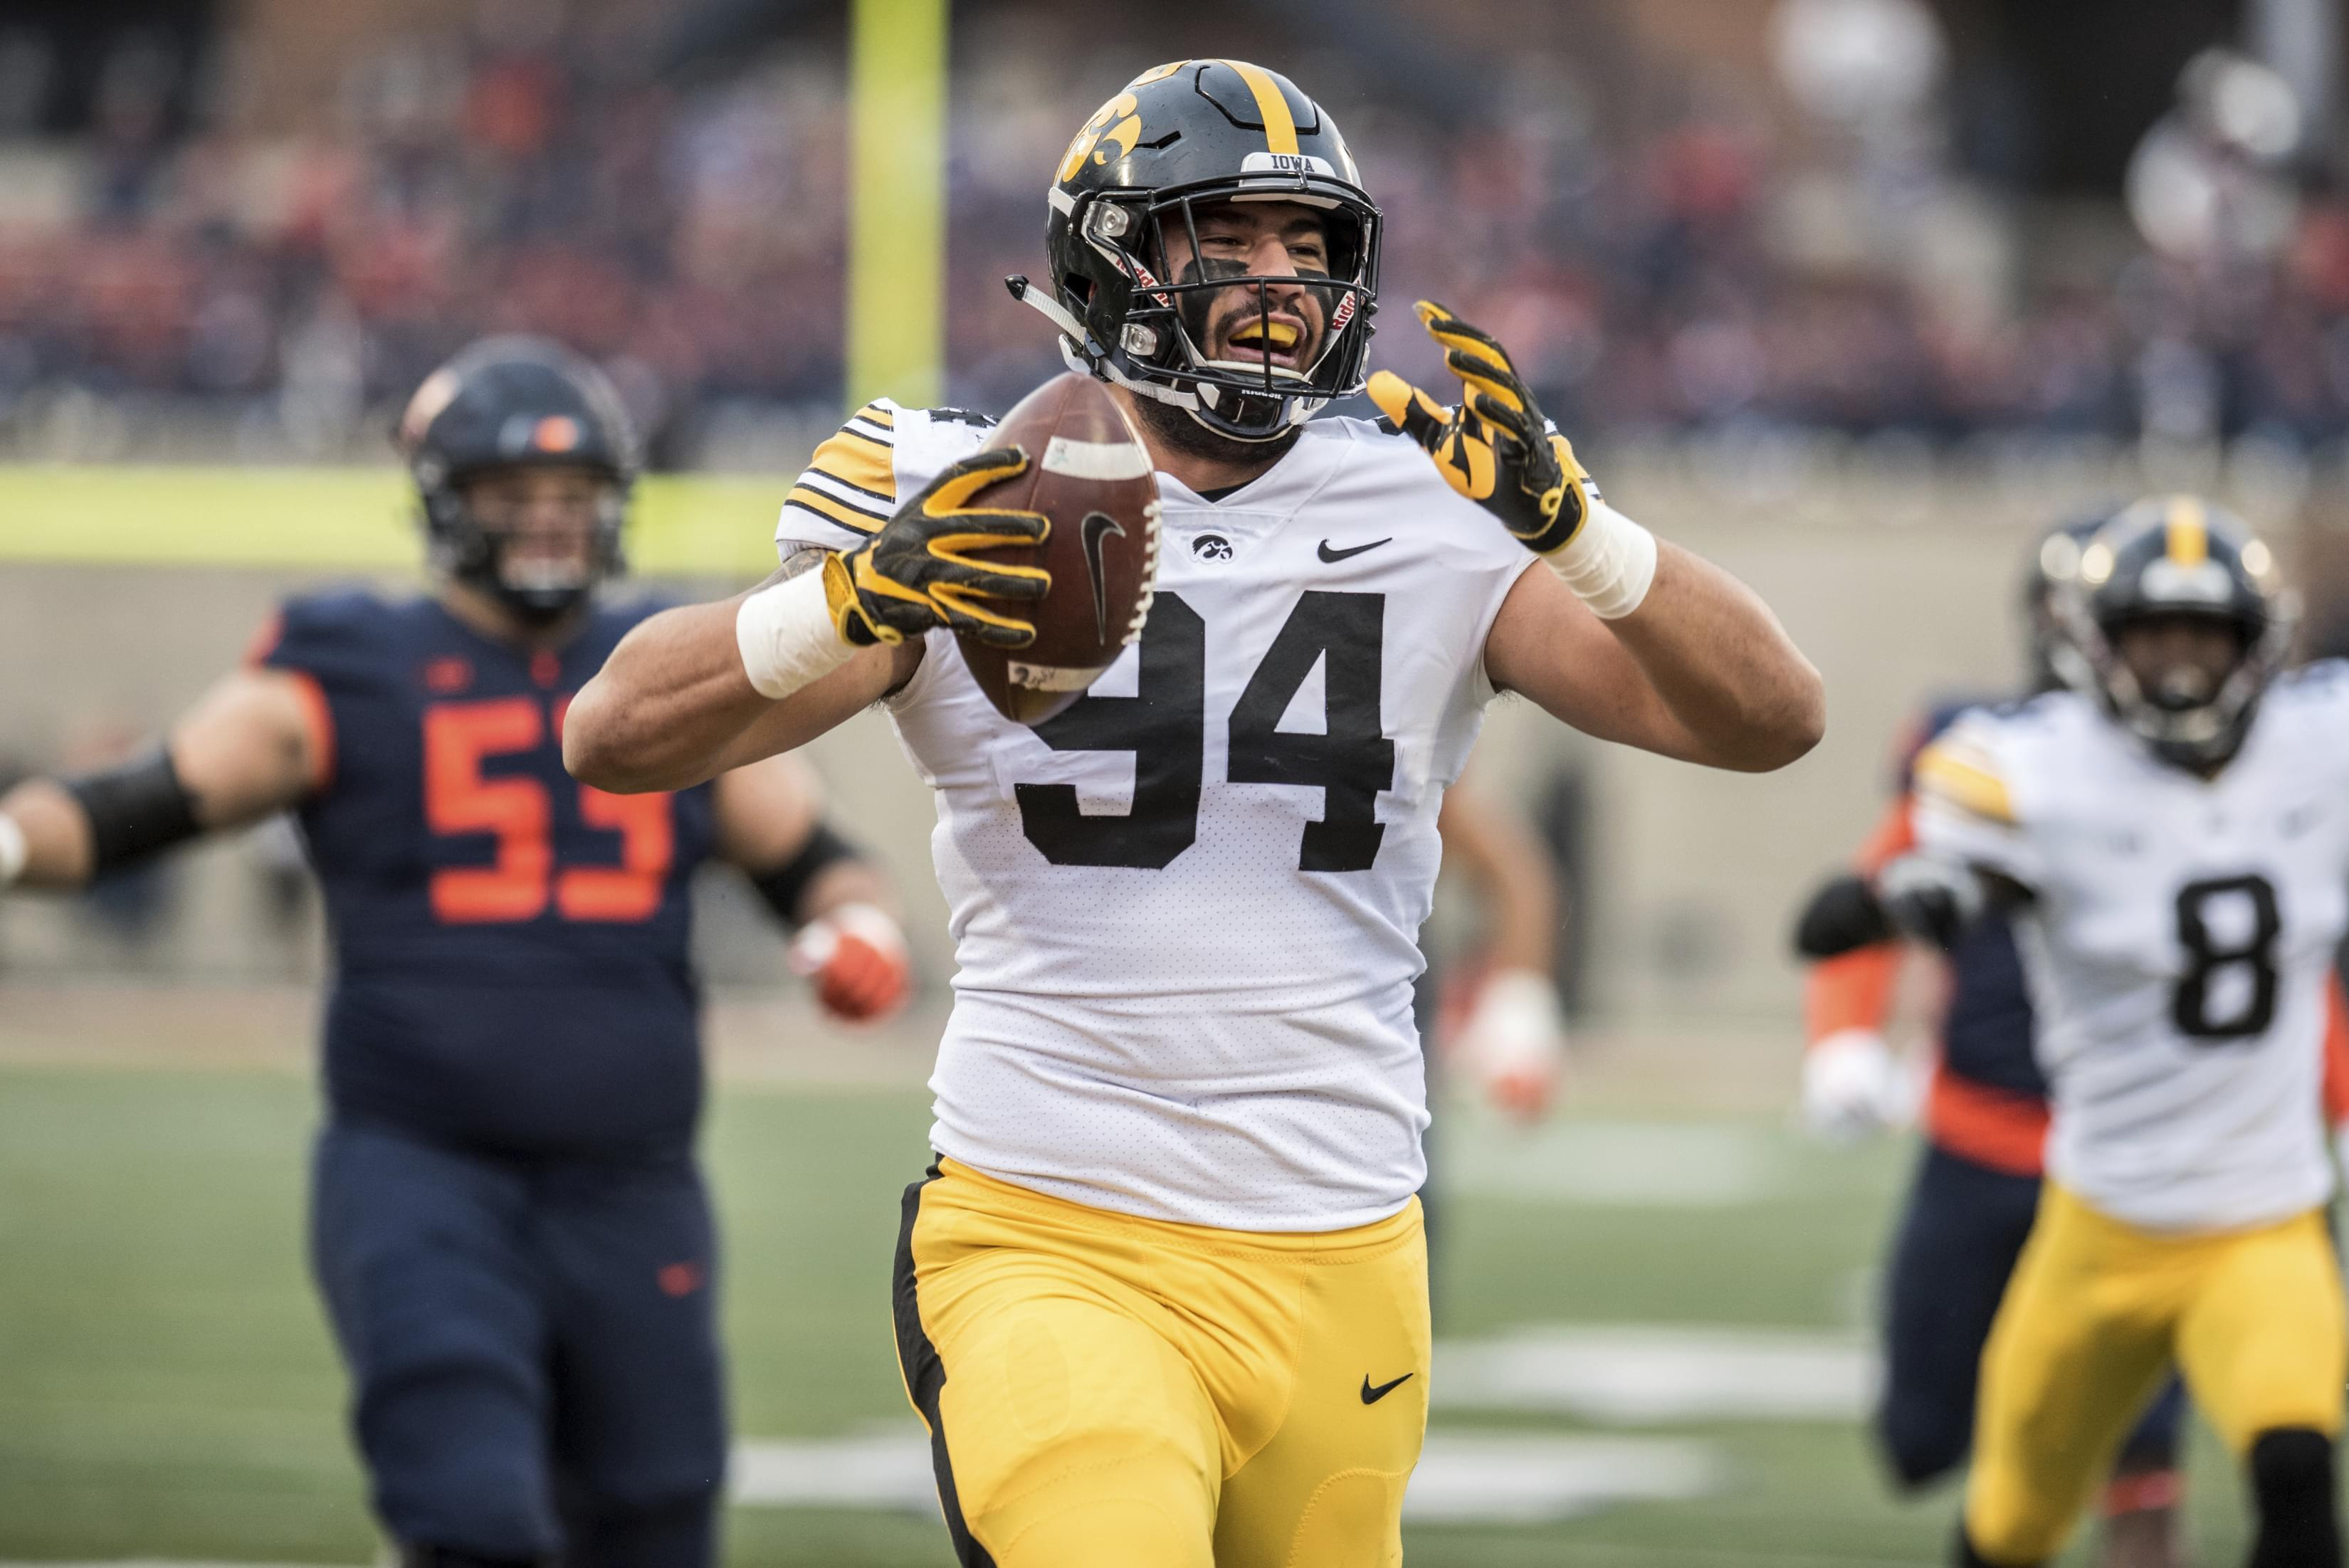 Iowa's A.J. Epenesa (94) celebrates after returning a fumble for a touchdown in the first half of a NCAA college football game against Illinois, Saturday, Nov. 17, 2018, in Champaign, Ill.